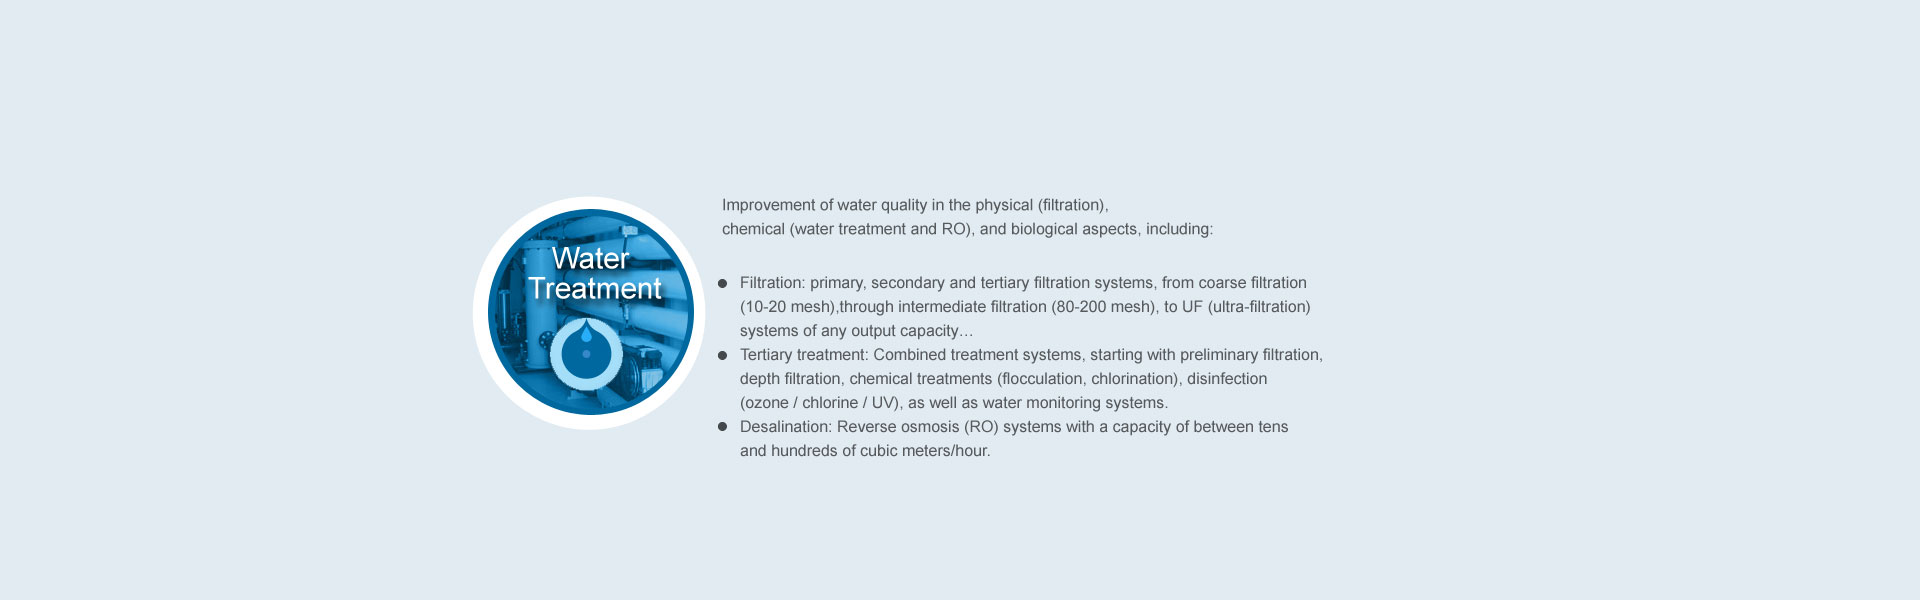 water-treatment-12